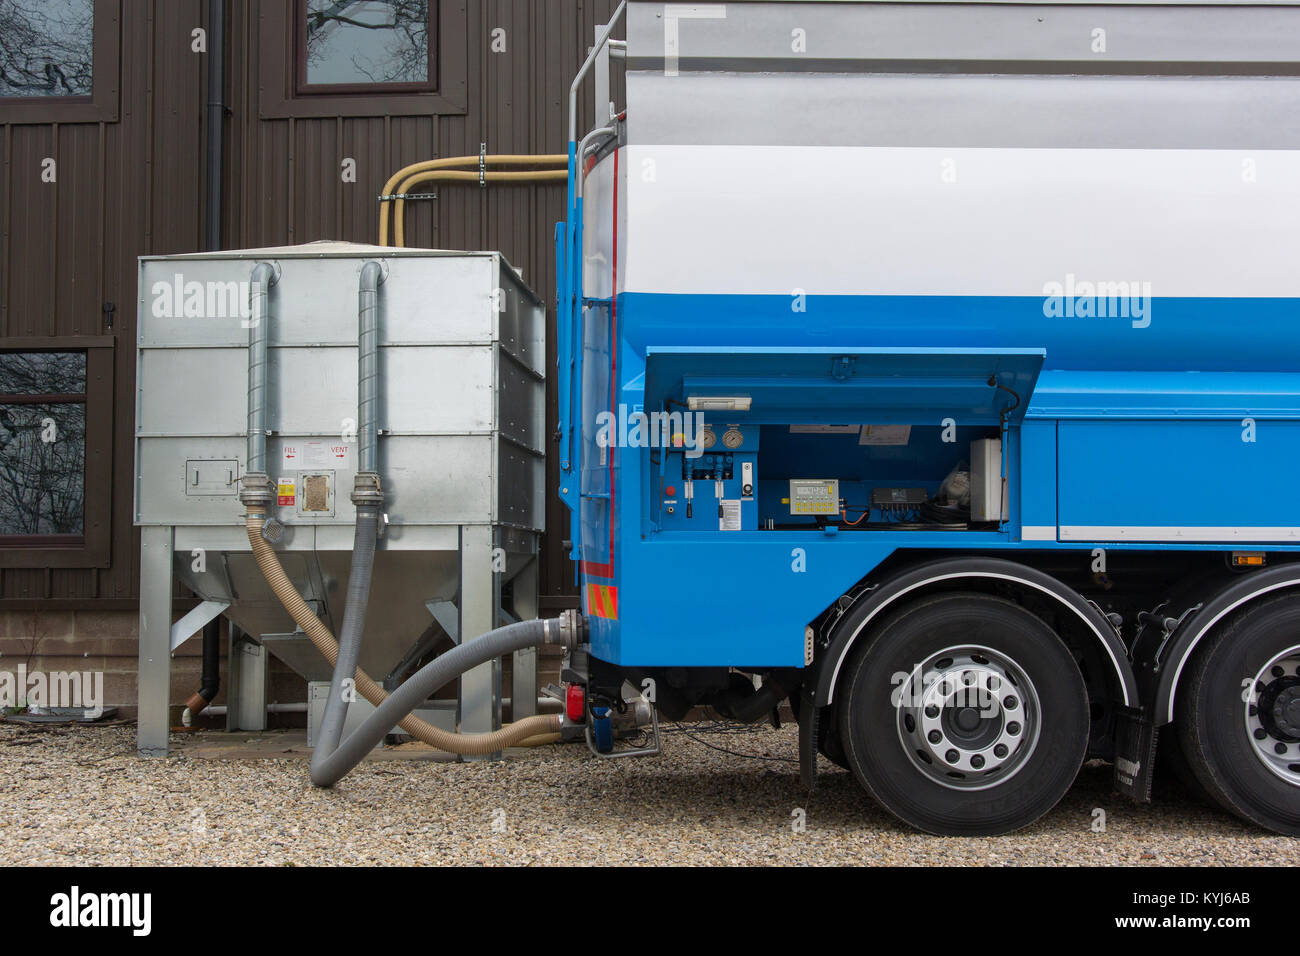 Wood pellets being delivered into a bulk hopper for use in Bio Fuel heater at an industrial park, UK. Stock Photo